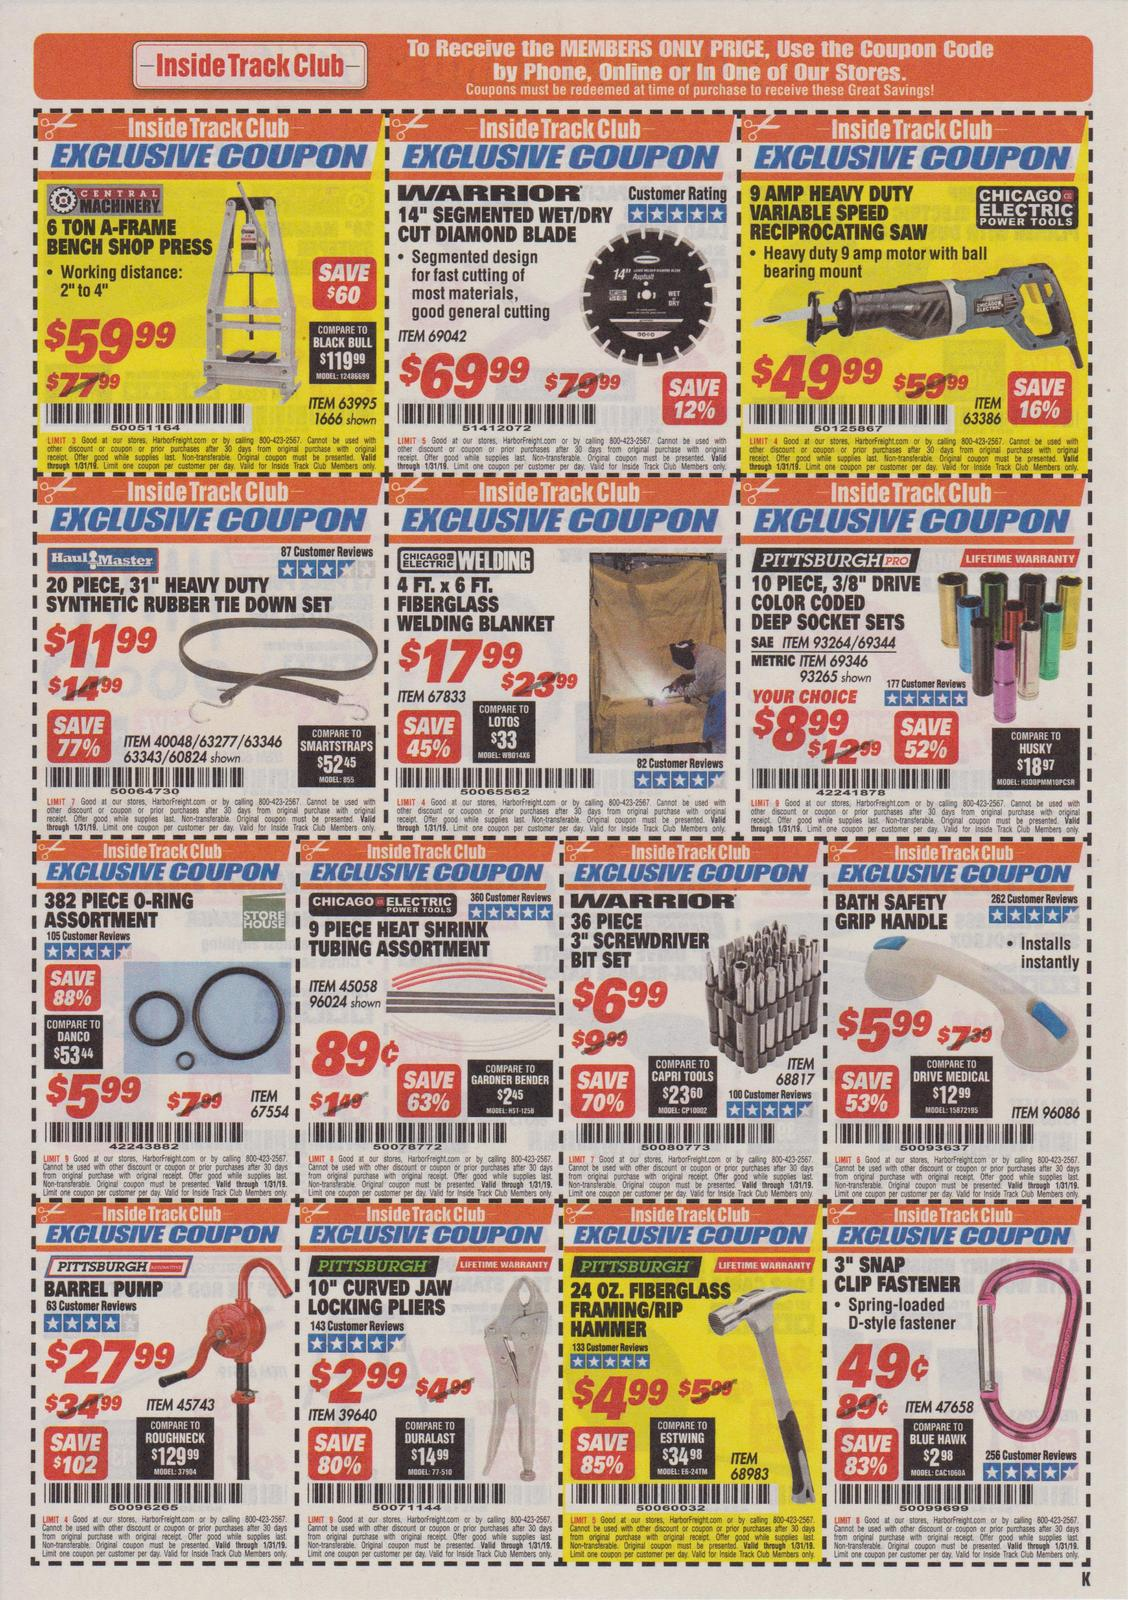 Harbor Freight Inside Track Club Coupons – January 2019